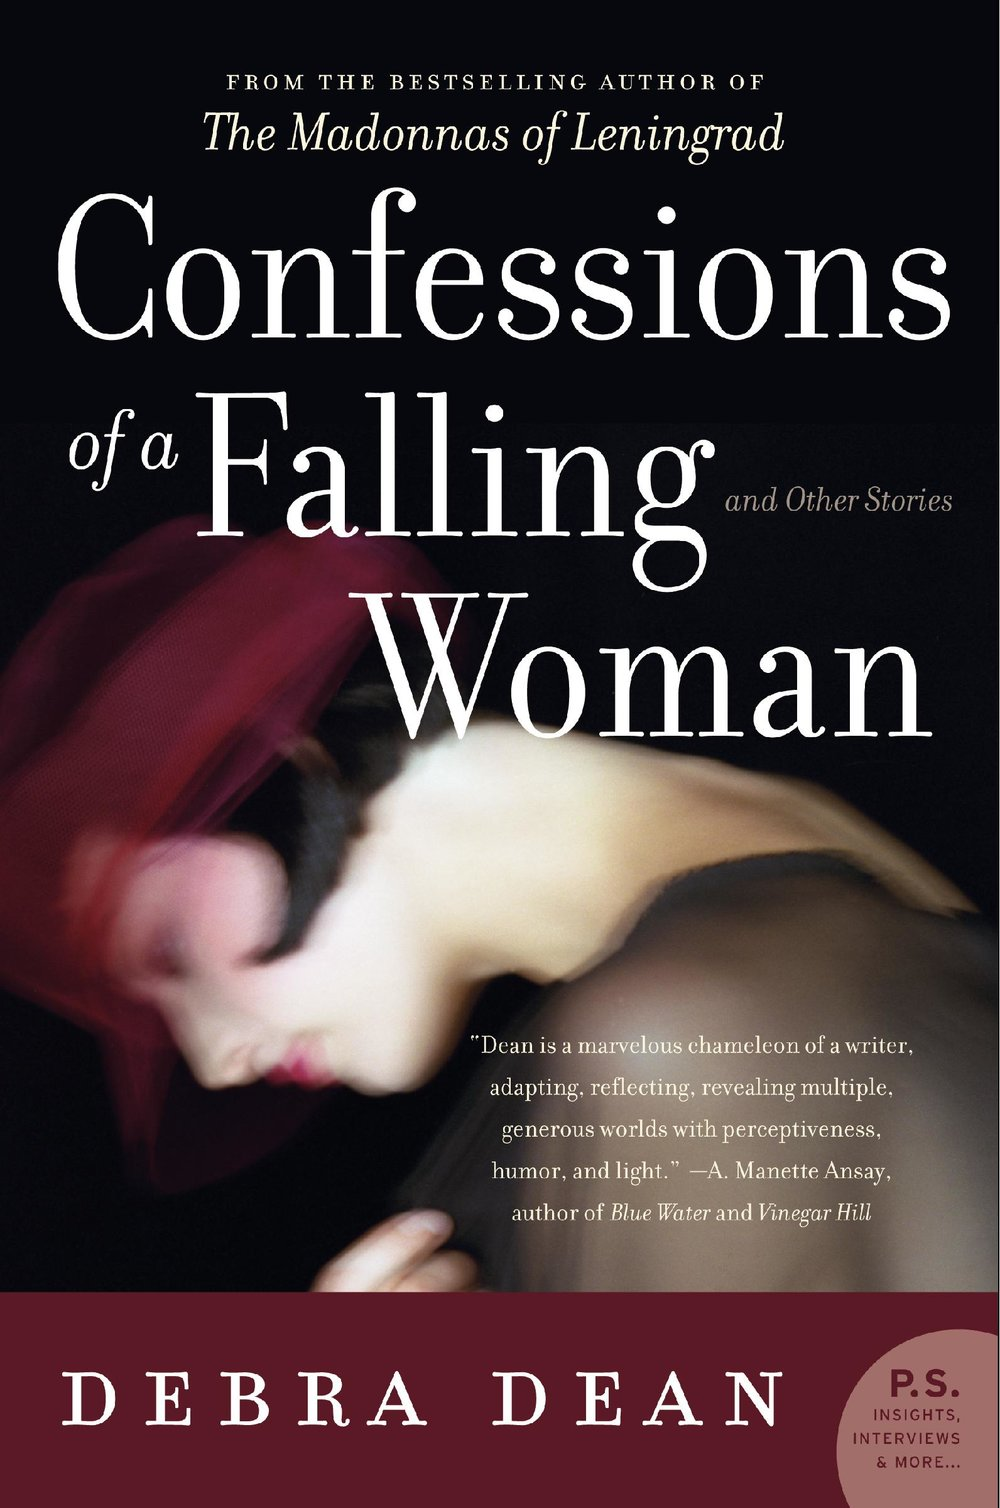 Confessions of a Falling Woman, HarperCollins, 2008